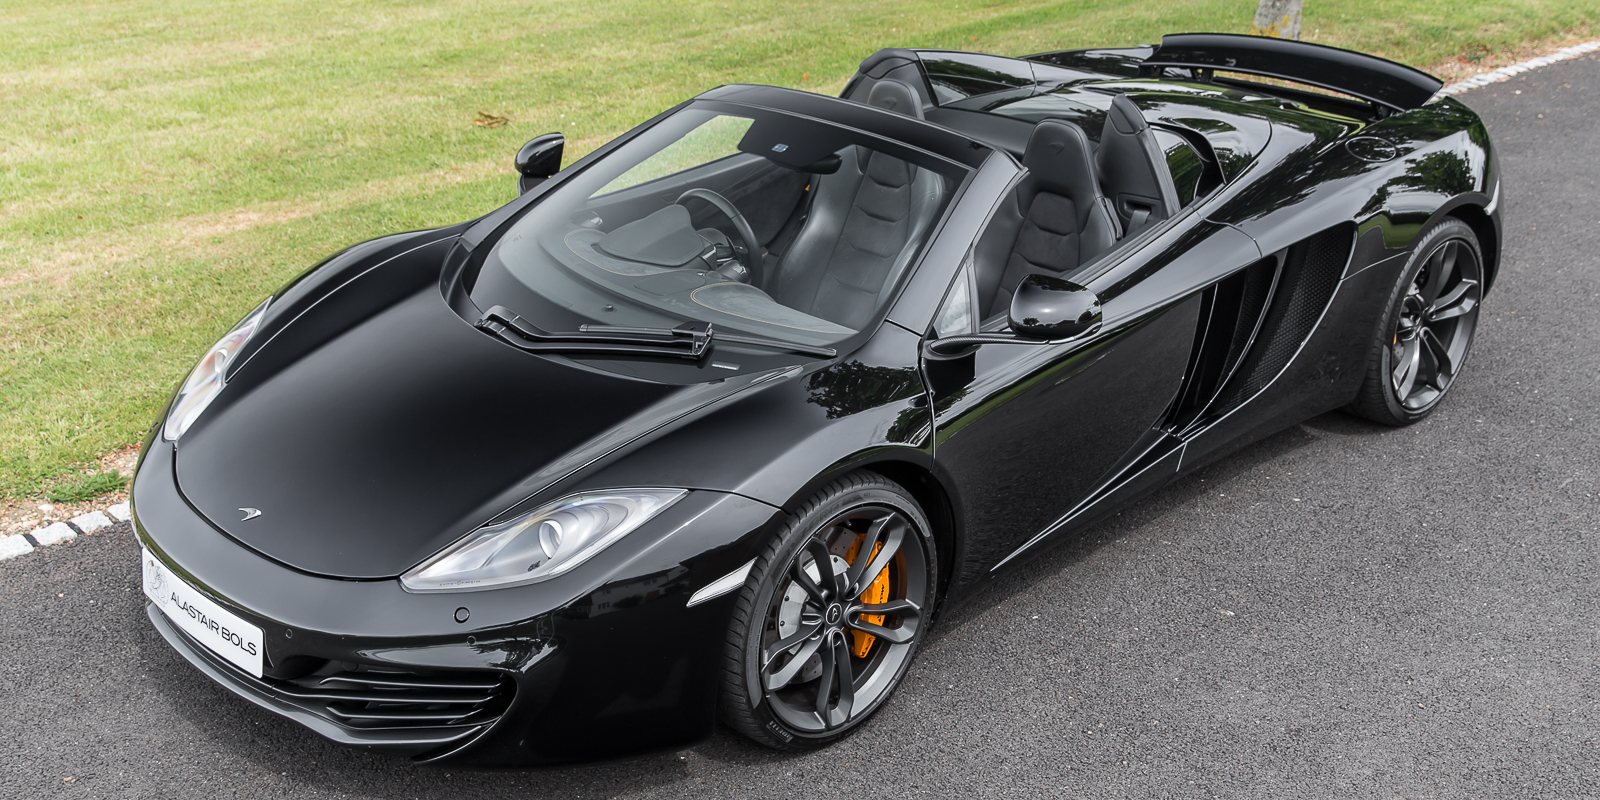 McLaren 12C Spider Black with MSO Interior